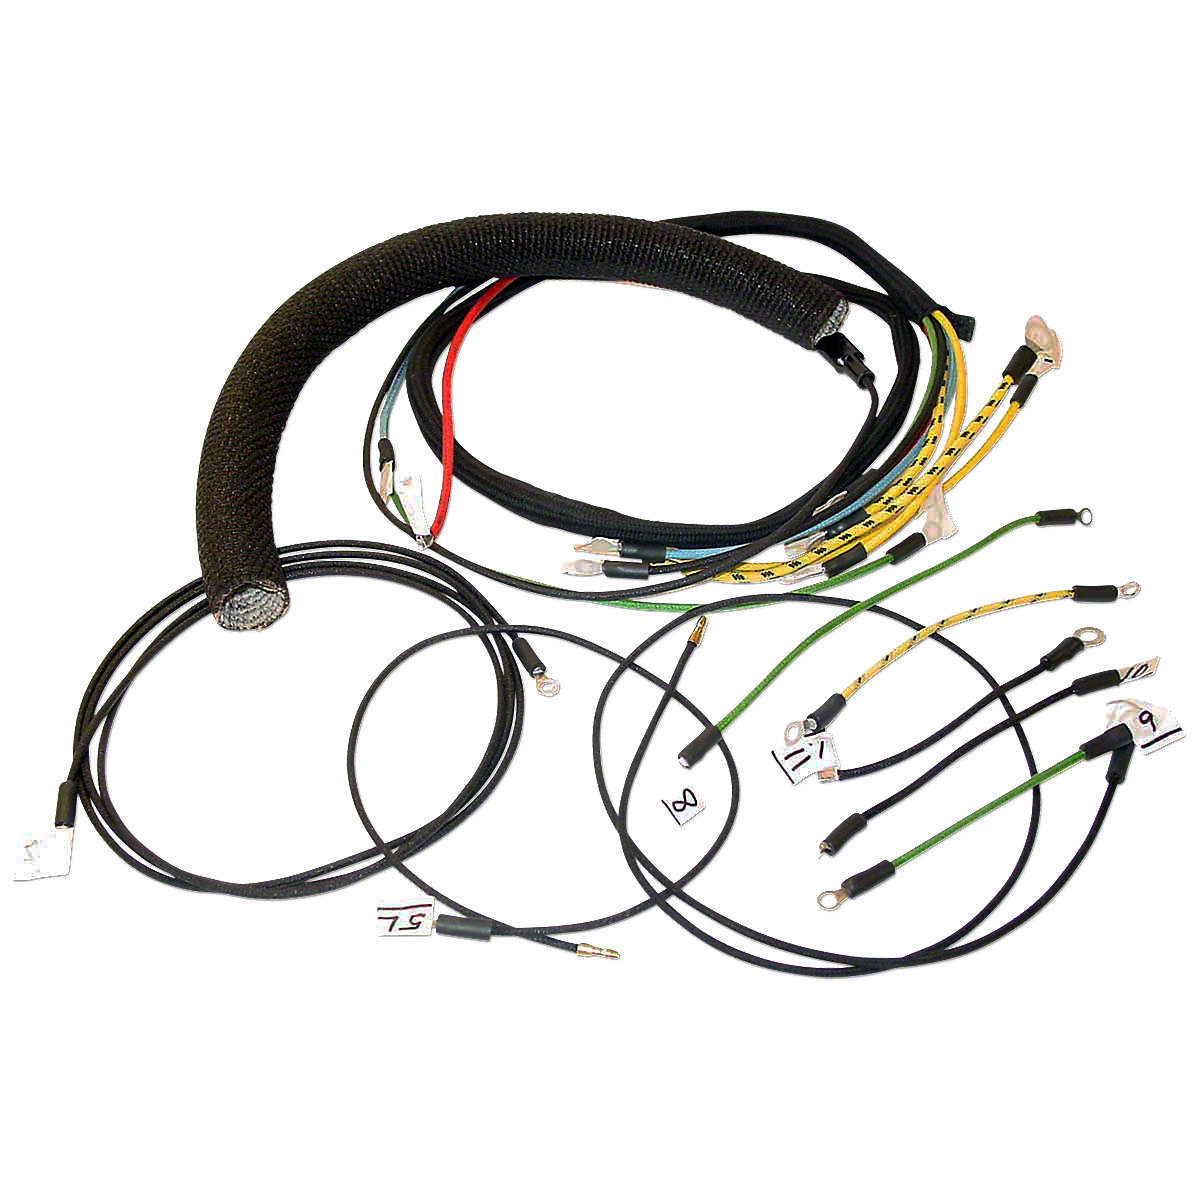 mhs063 wiring harness for massey harris pony massey ferguson parts